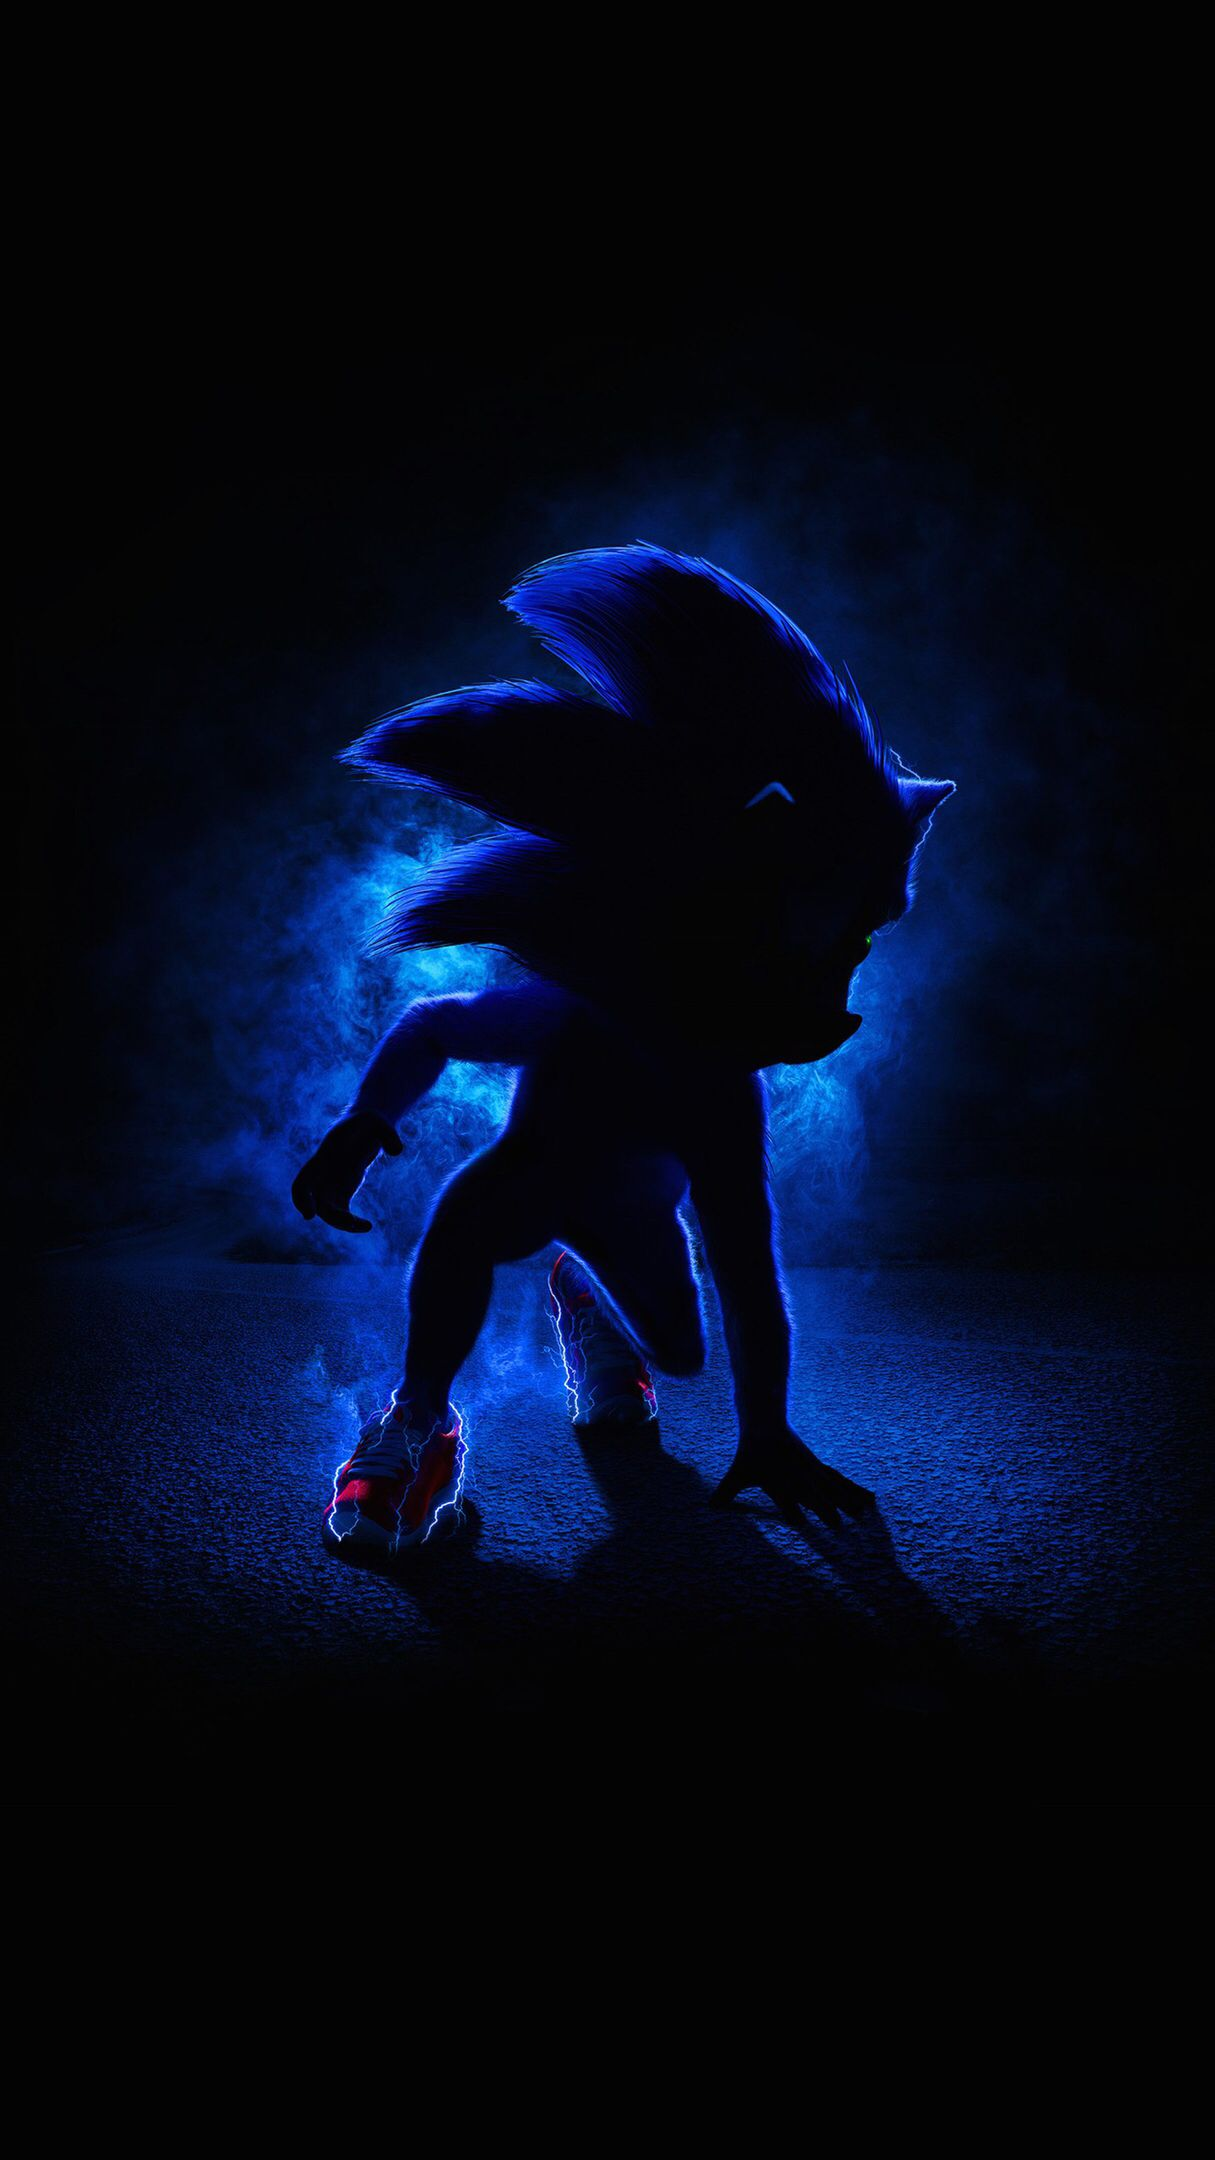 Pin by Cali on Game Past..... in 2019 Sonic the hedgehog